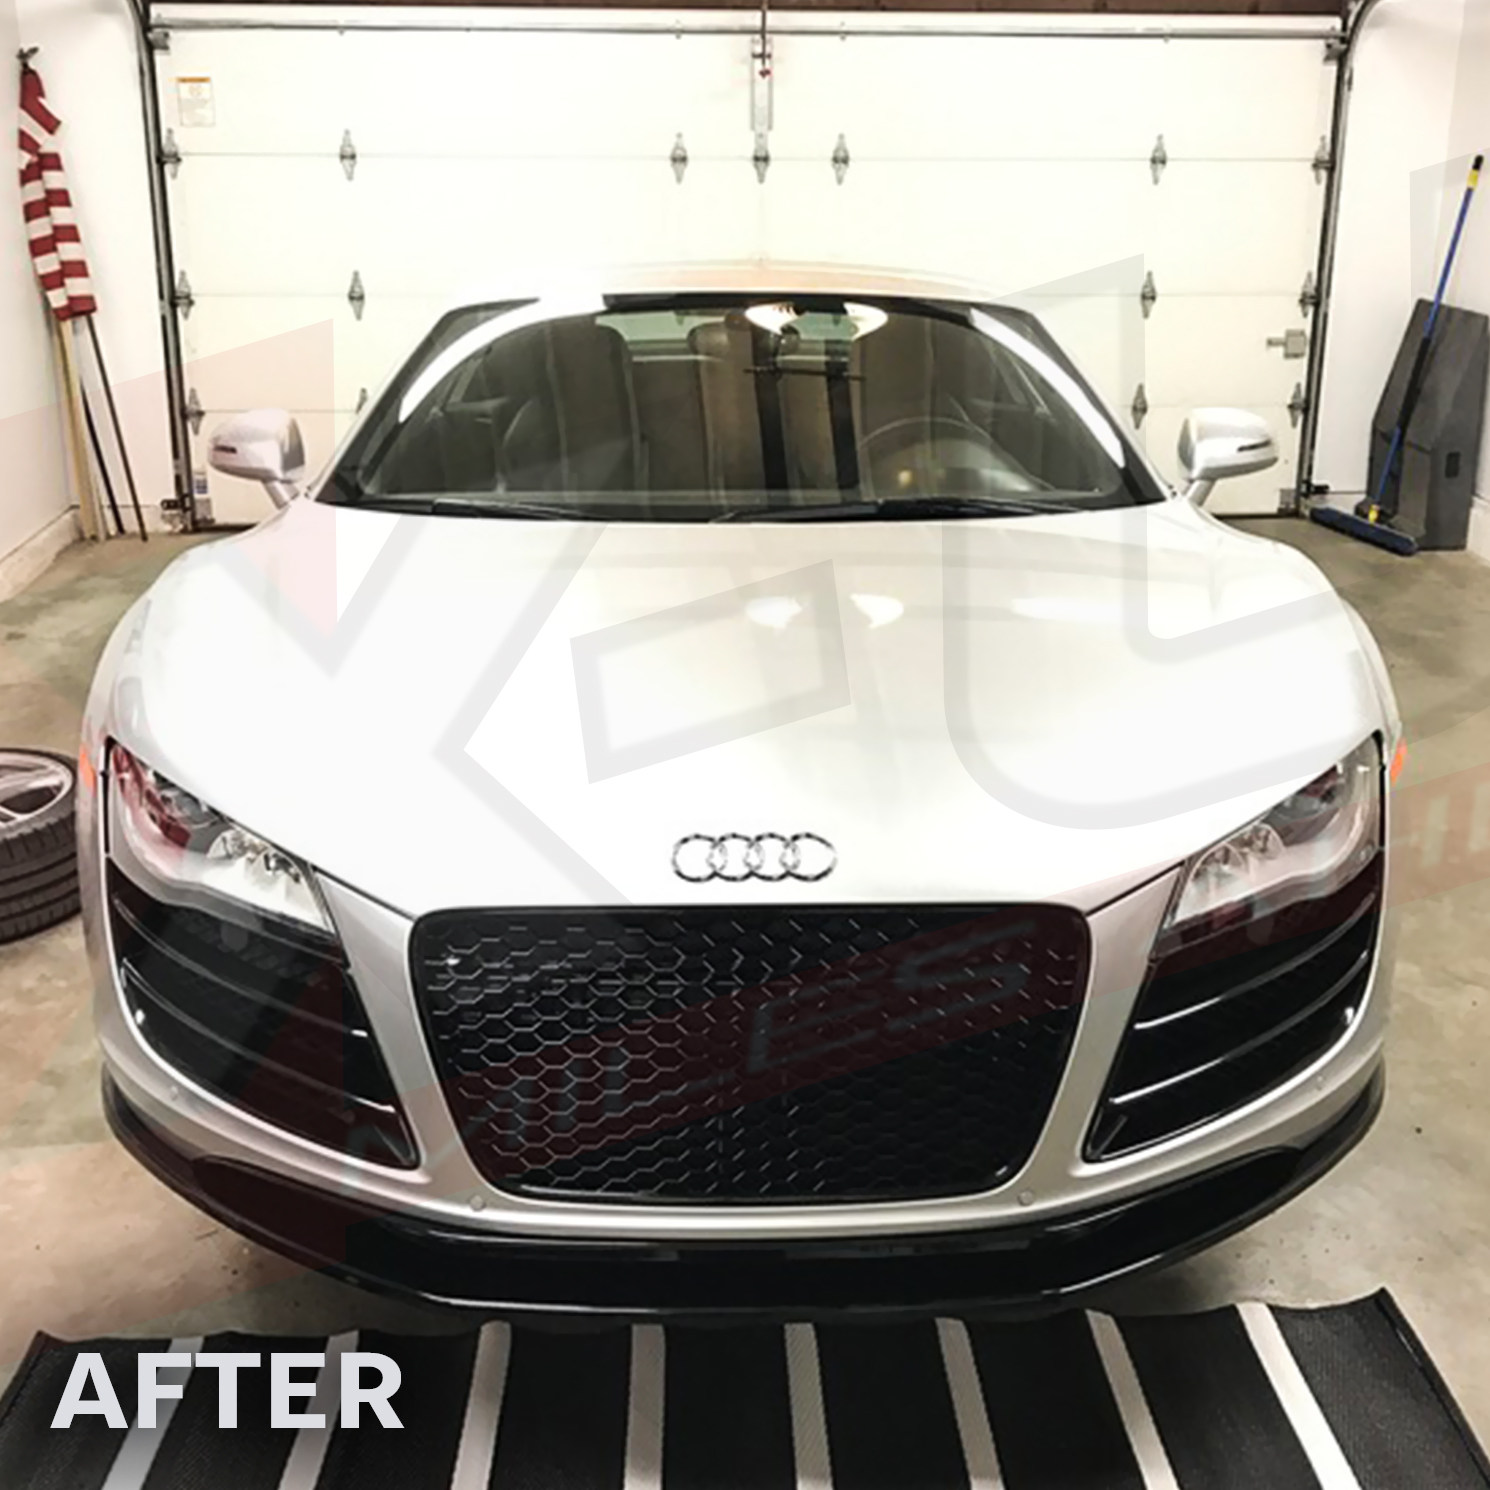 """The Parts House >> AUDI R8 front grill pre-facelift 2007-2012 """"gloss black with chrome surround"""""""